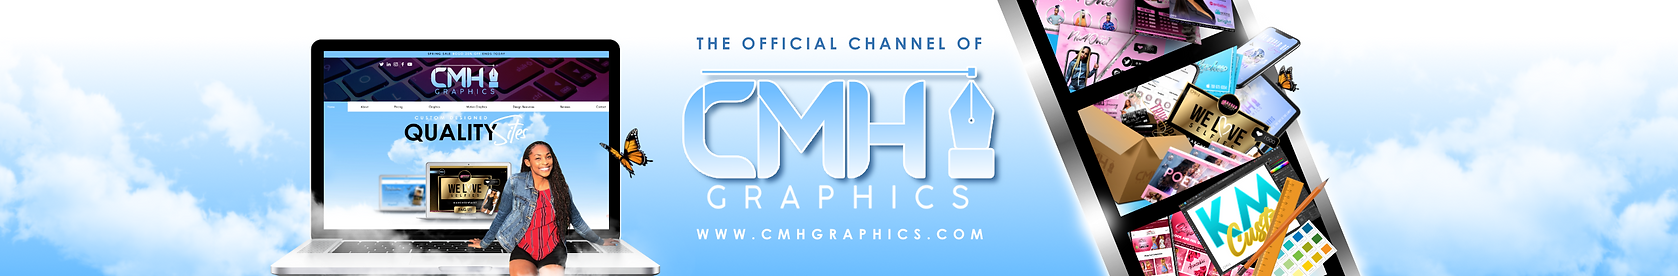 cmh banner.png